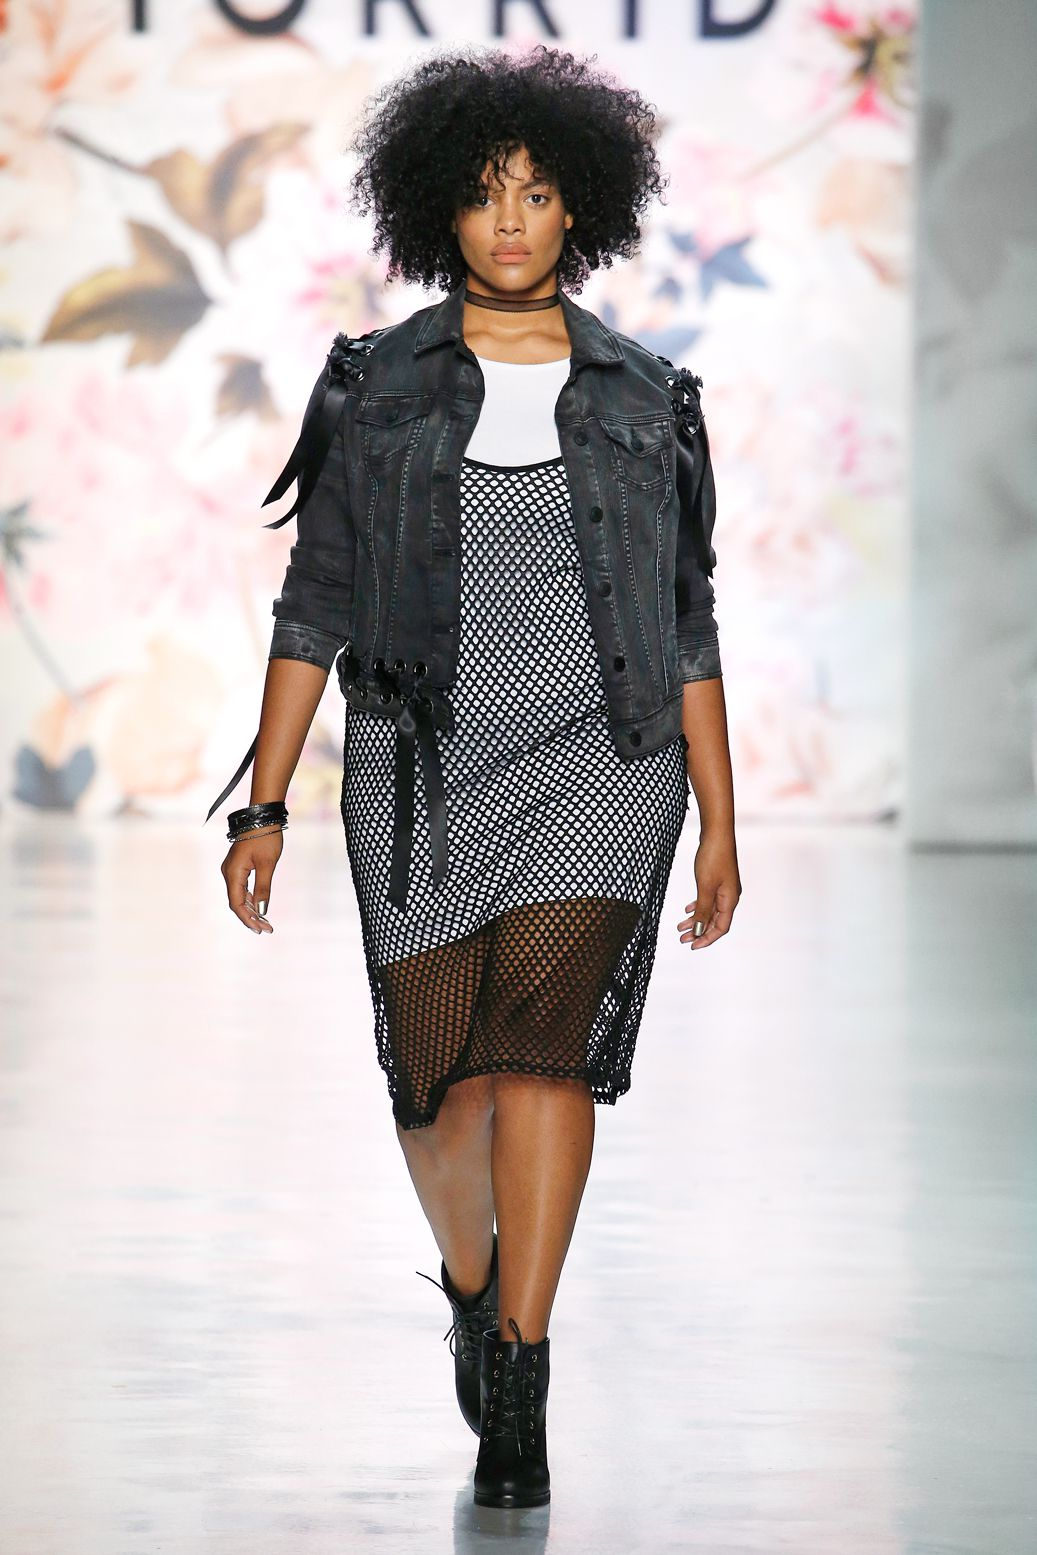 2962c0c1917 Torrid s NYFW Show Reaffirmed Fashion s Disdain for Fat People - Racked